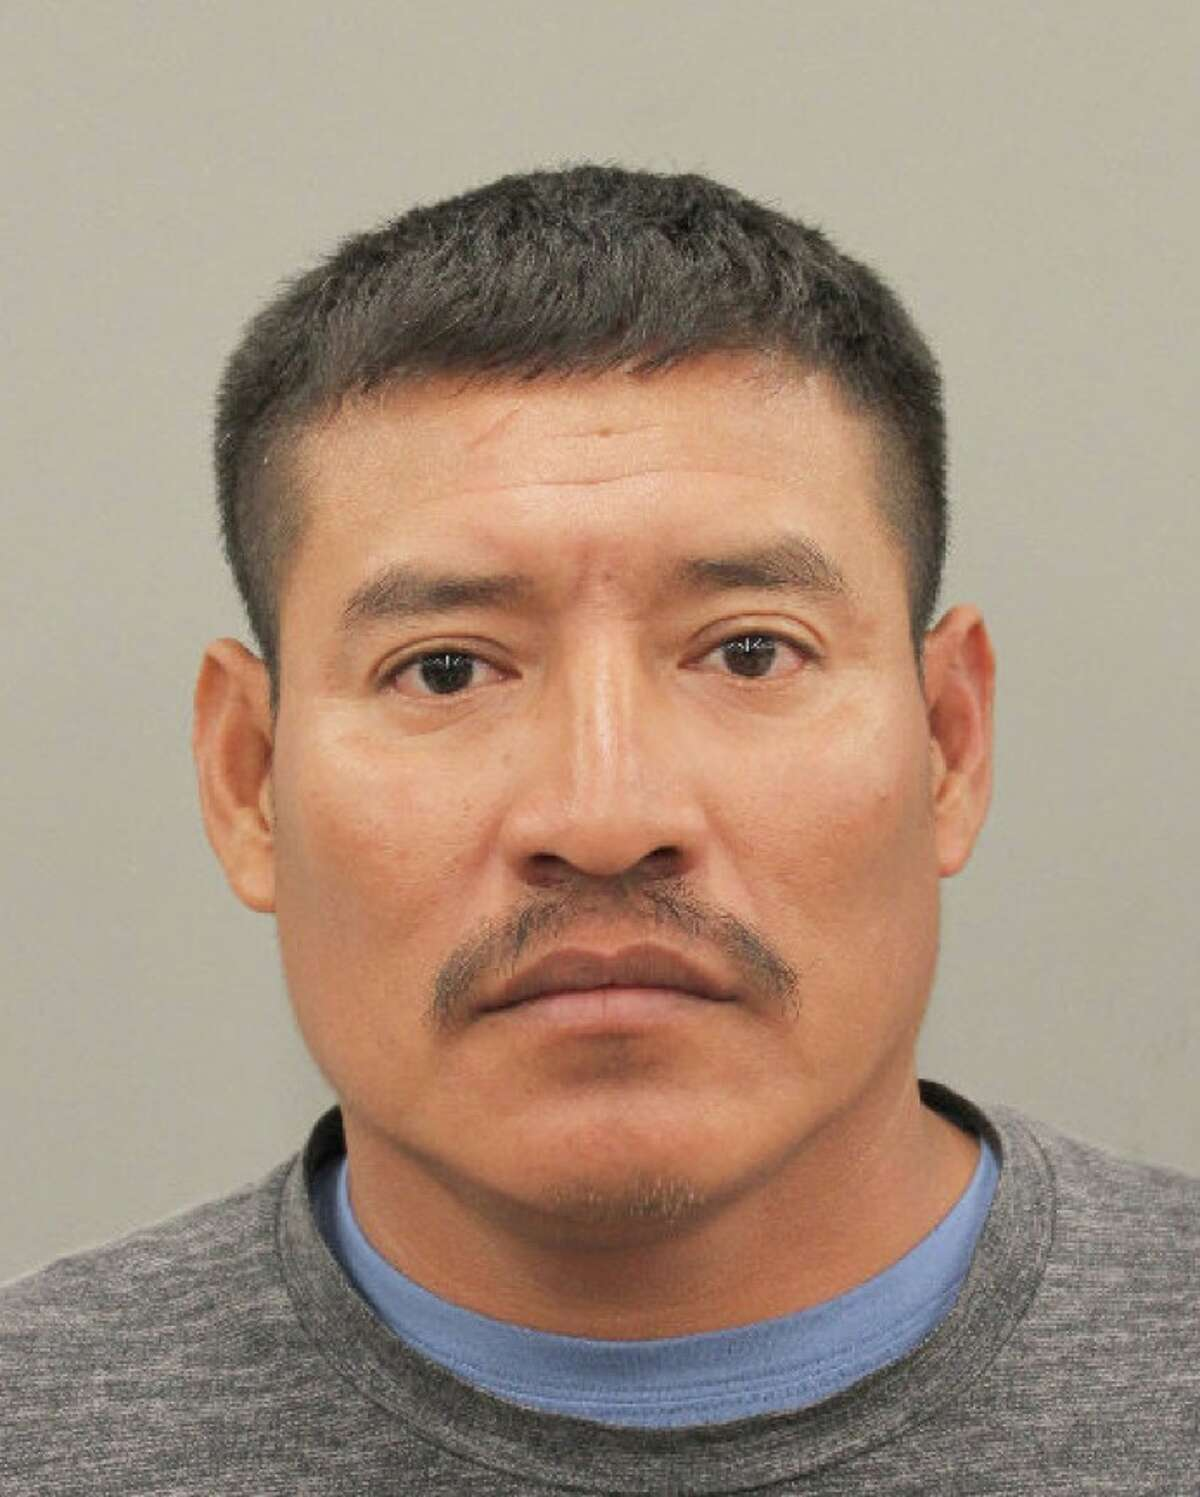 Felix Marcelino Vega, 37, was charged with intoxication manslaughter for allegedly causing a crash that left a 10-year-old dead Sunday, Oct. 27, 2019.